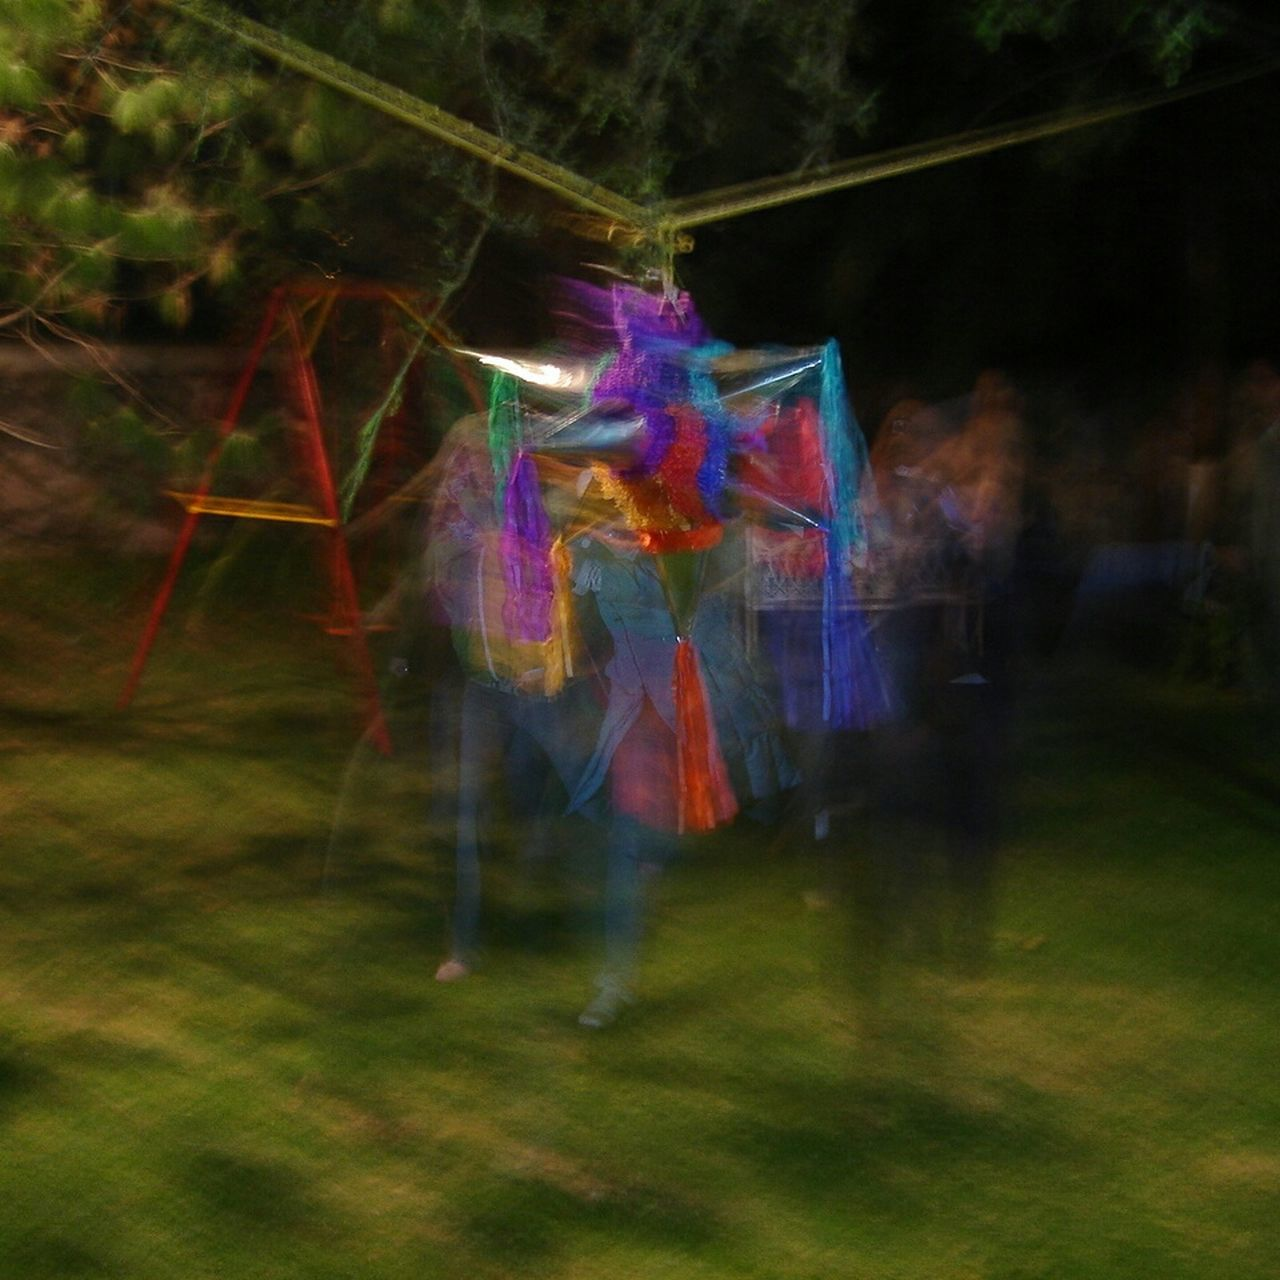 Tree Night Multi Colored Celebration Outdoors Hanging Spooky Grass Forest Full Length People One Person Nature Sky Only Men Movement Piñata